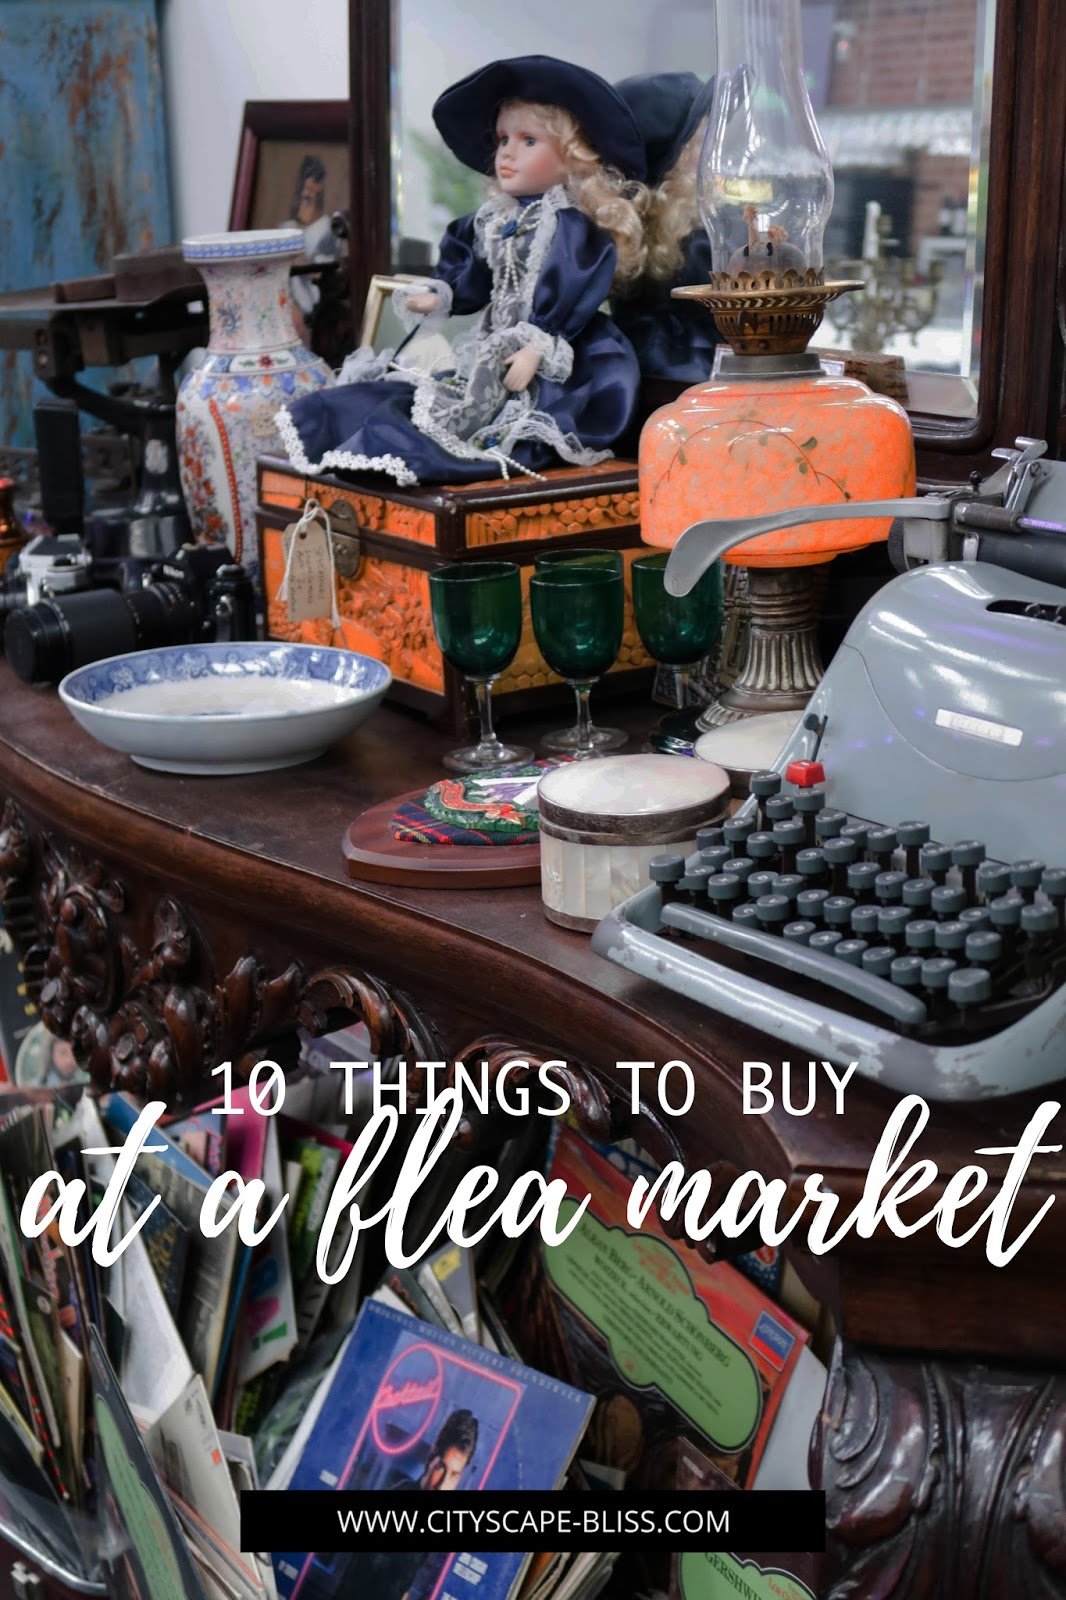 10 things to buy at a flea market